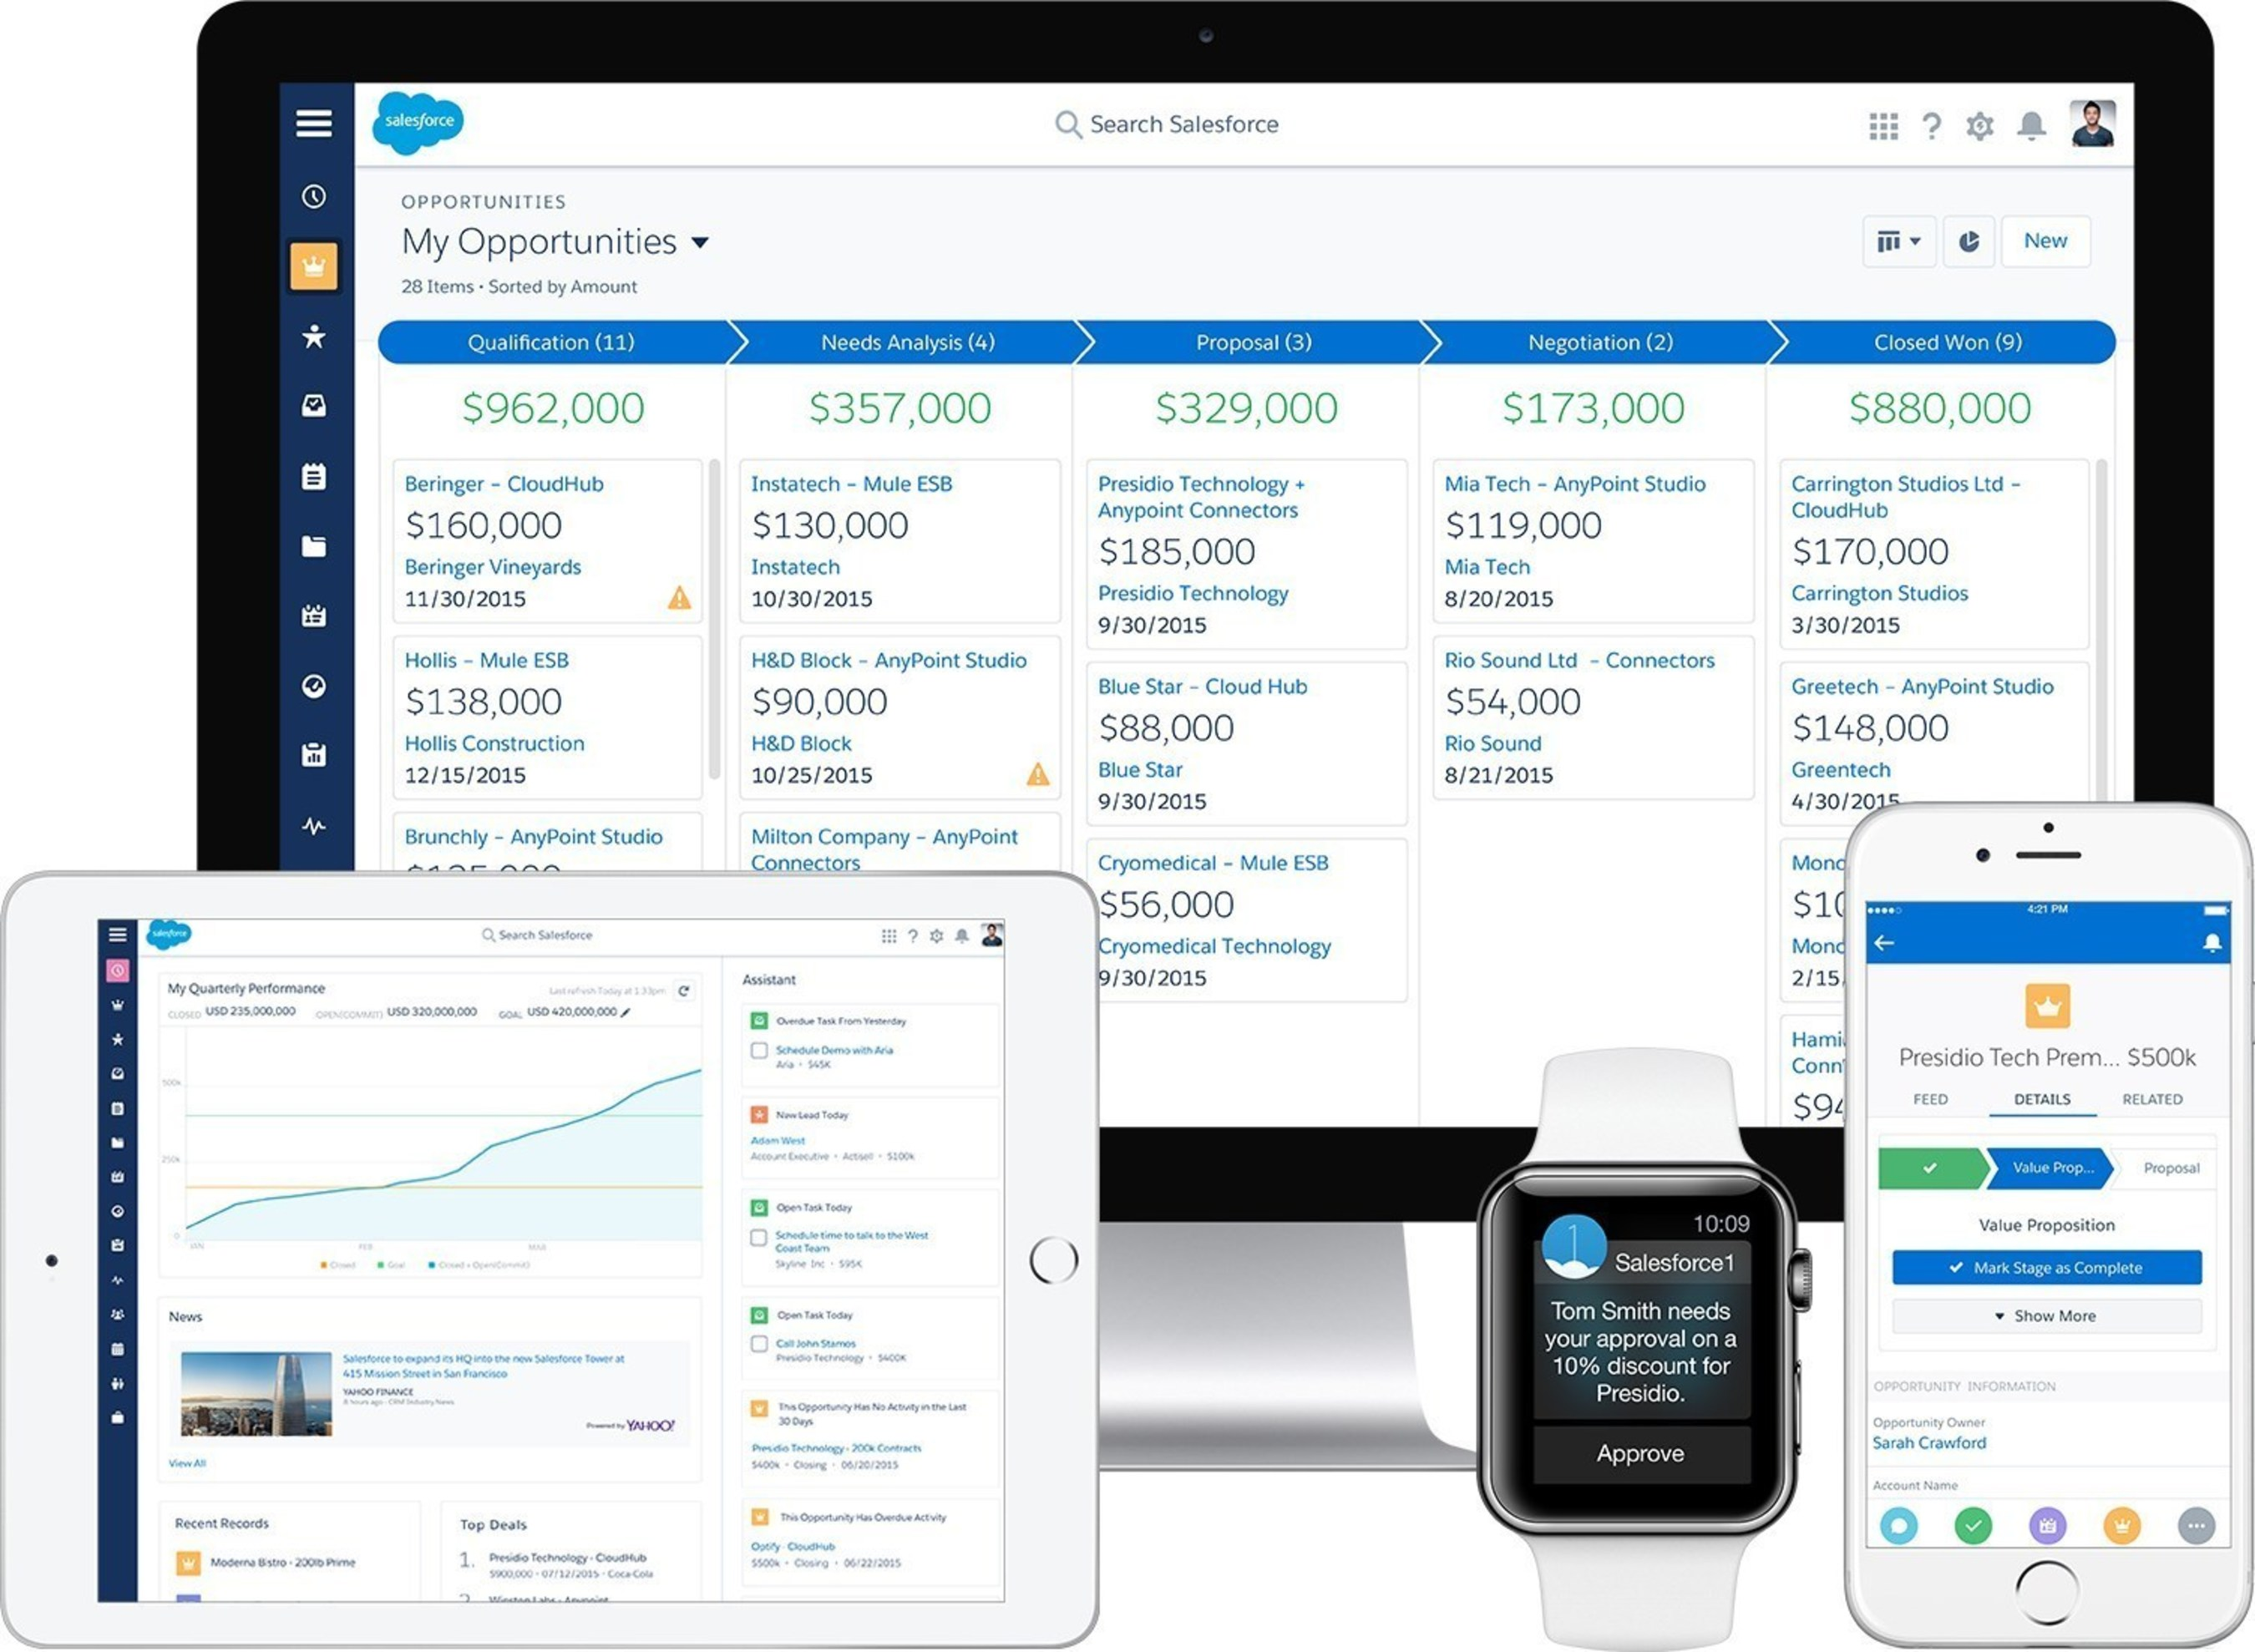 Salesforce Lightning - Experience the Future of CRM Today -- Modern, efficient and intelligent, the new Lightning Experience enables people to work faster, smarter and the way they want